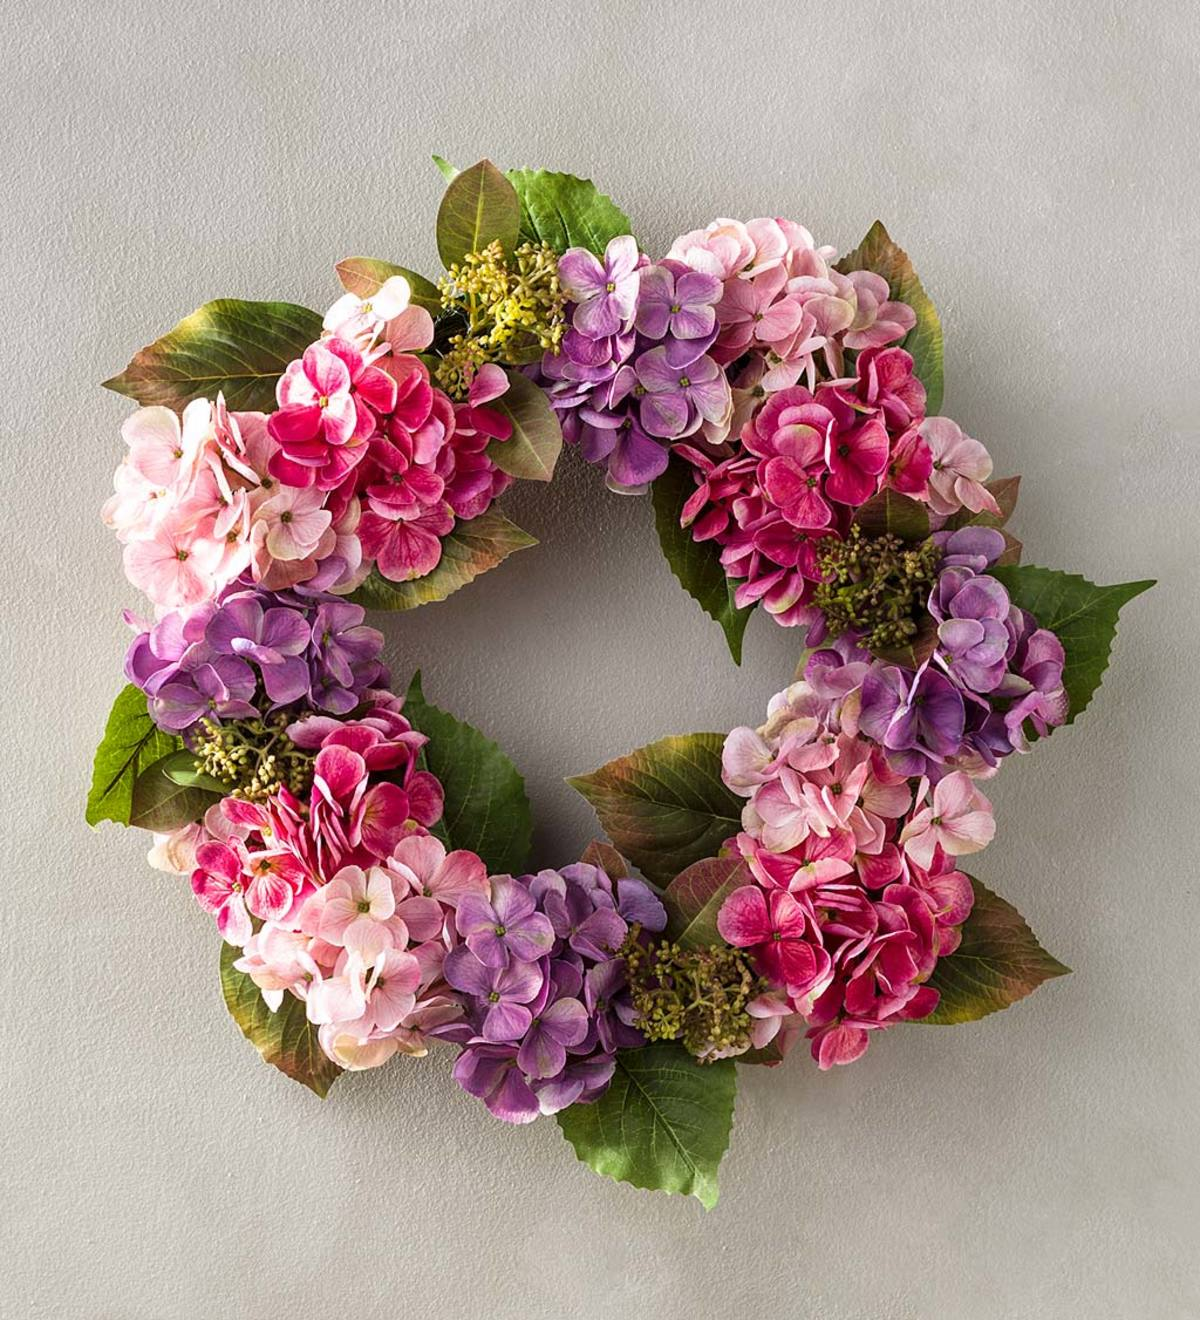 Pink and Purple Faux Hydrangea Flowers Wreath with Rattan Base